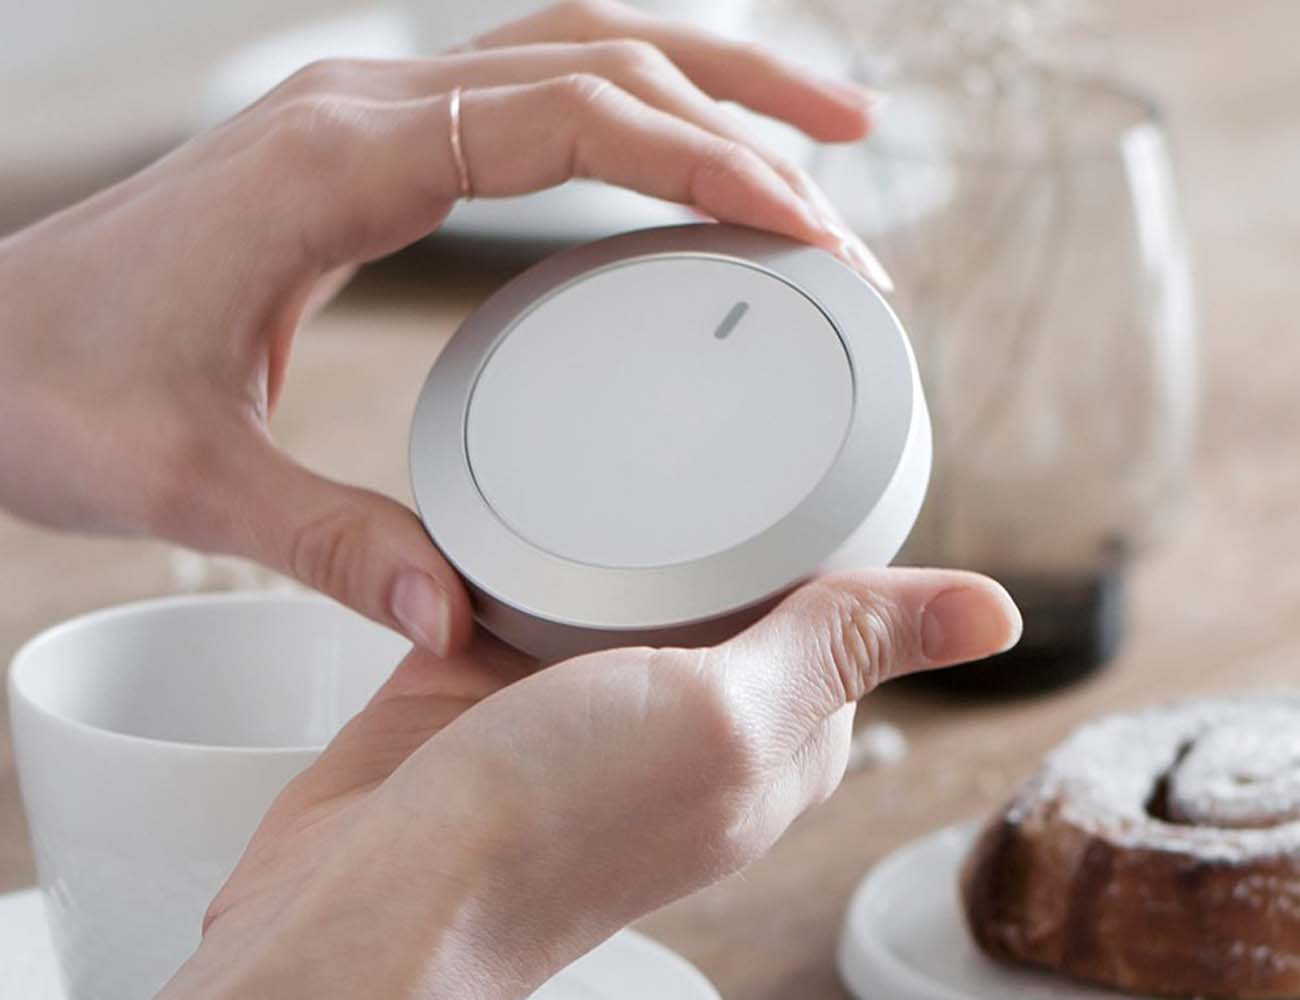 Nuimo: Seamless Smart Home Interface